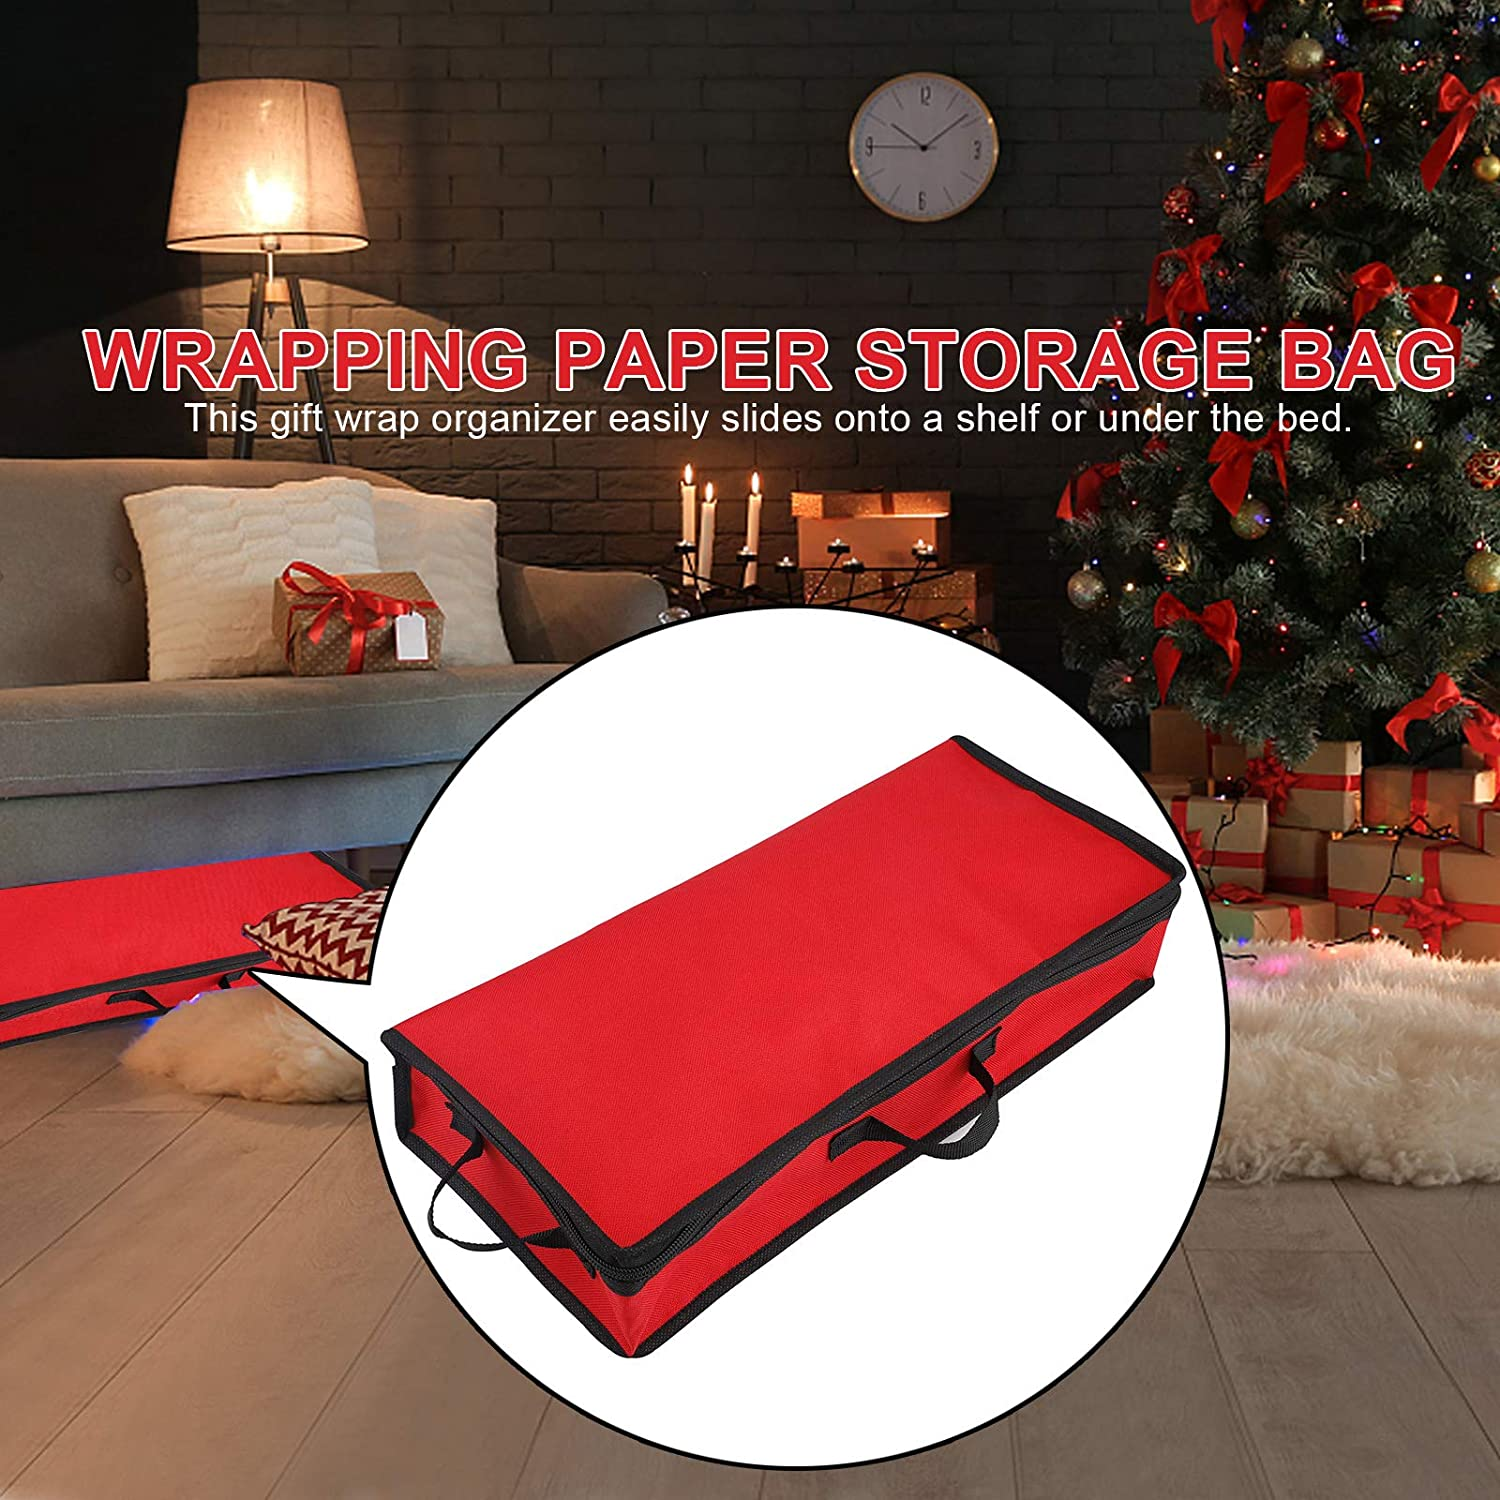 Cards Jourad Gift Wrapping Paper Storage Bag Tags Bows Storage Box With Compact Interior Pockets Ribbons Bags Gift Wrap Supplies Organizer /& Storage Bag Wrapping Paper 78.5x11x34cm